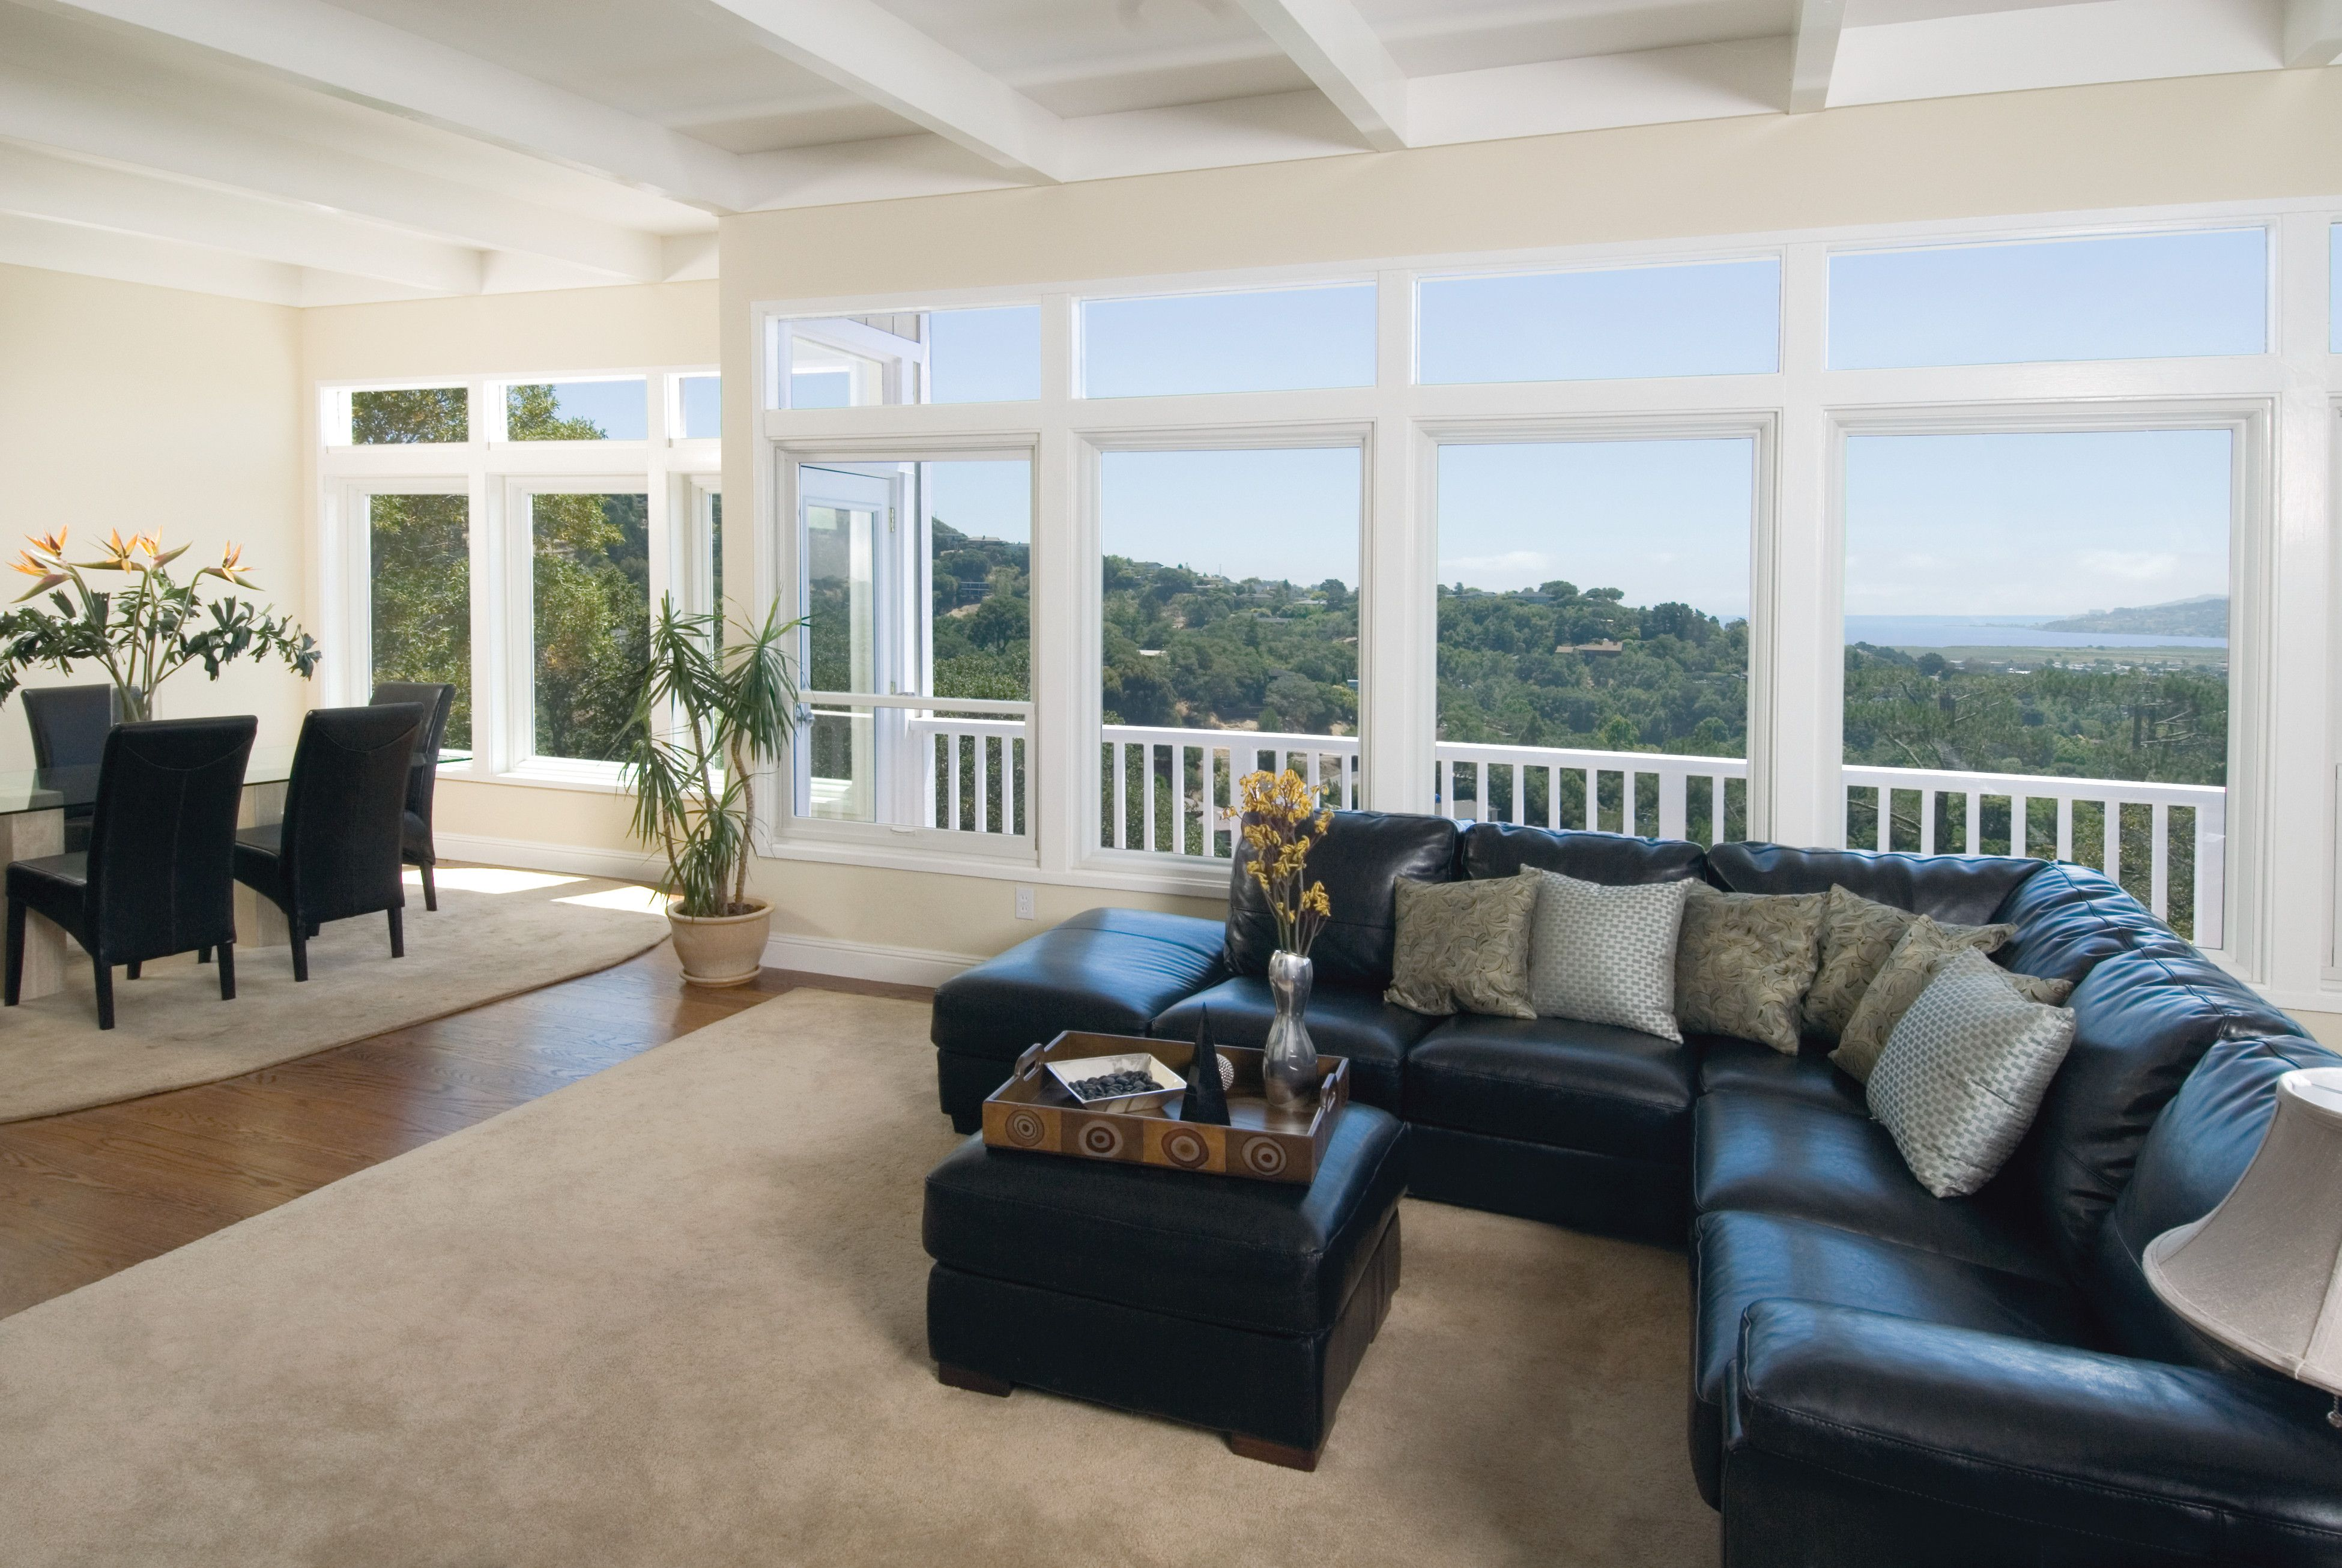 Large Small Picture Windows Can Be Mulled Together To Maximize Light And Spectacular Views